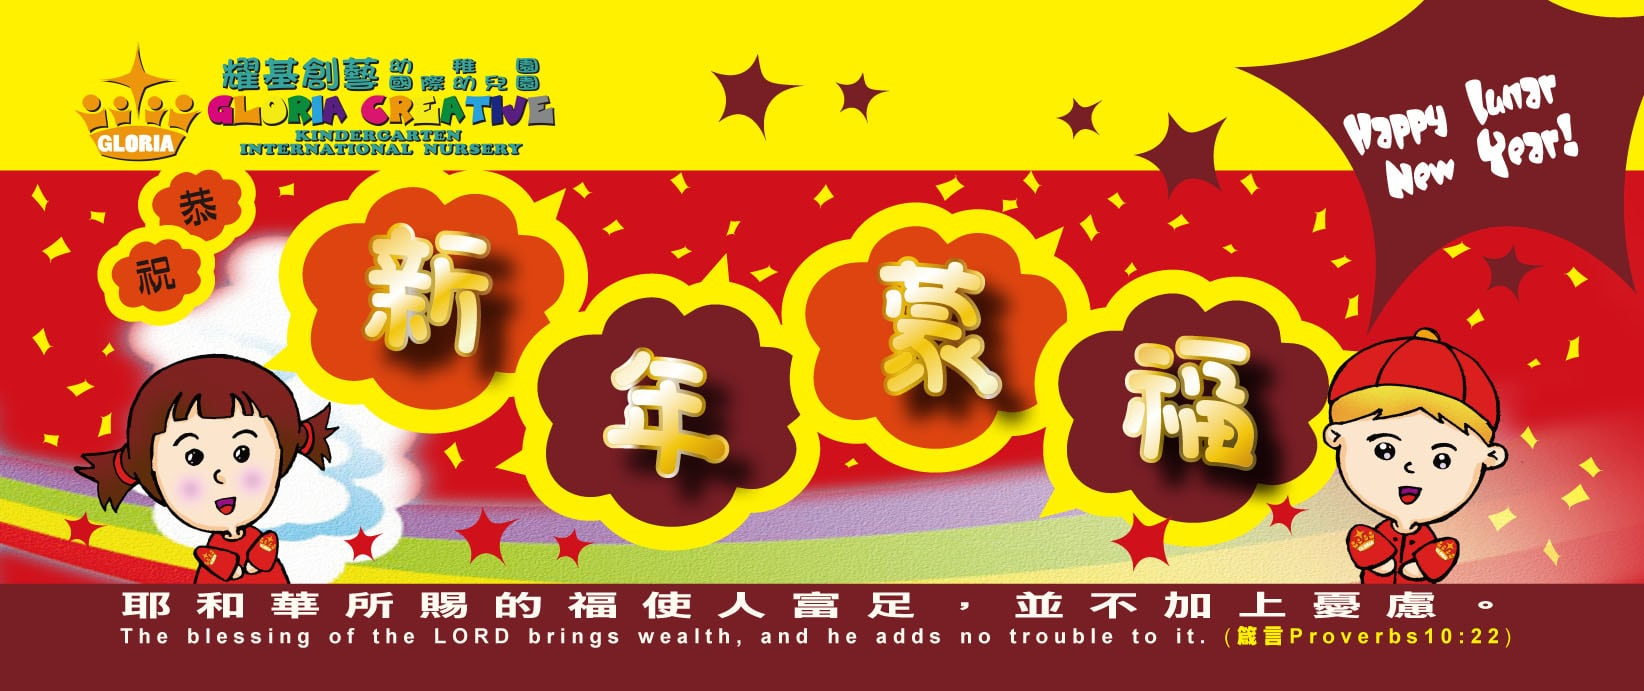 Photo of 2013 Happy Lunar New Year